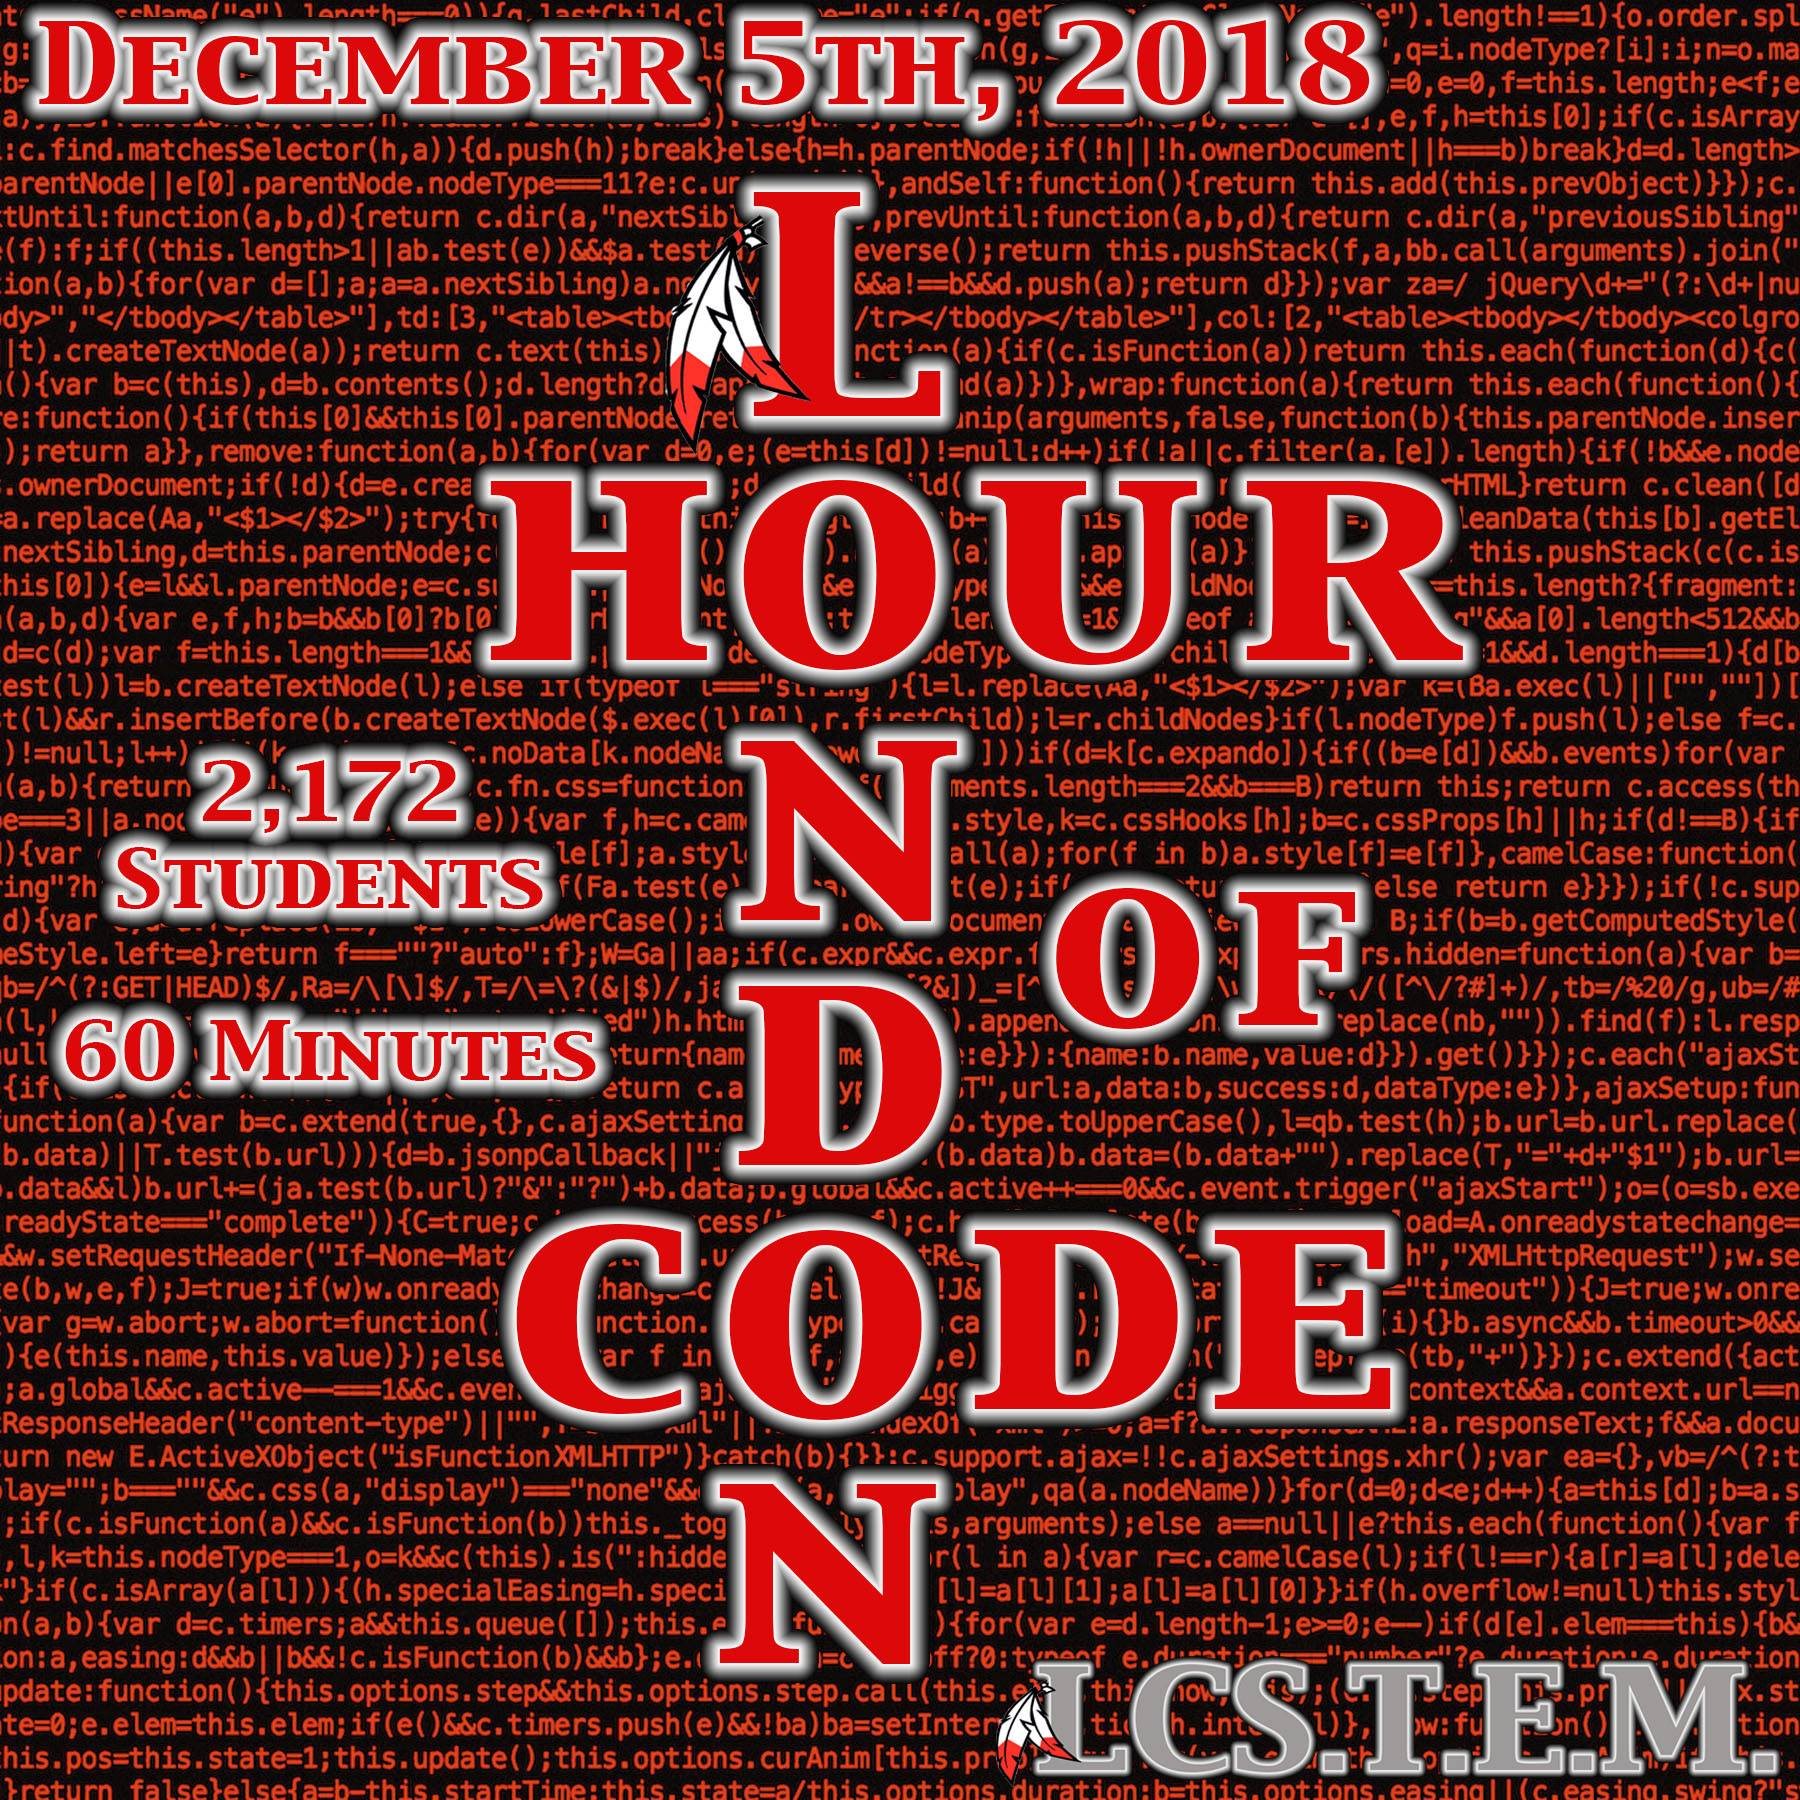 DISTRICT HOUR OF CODE